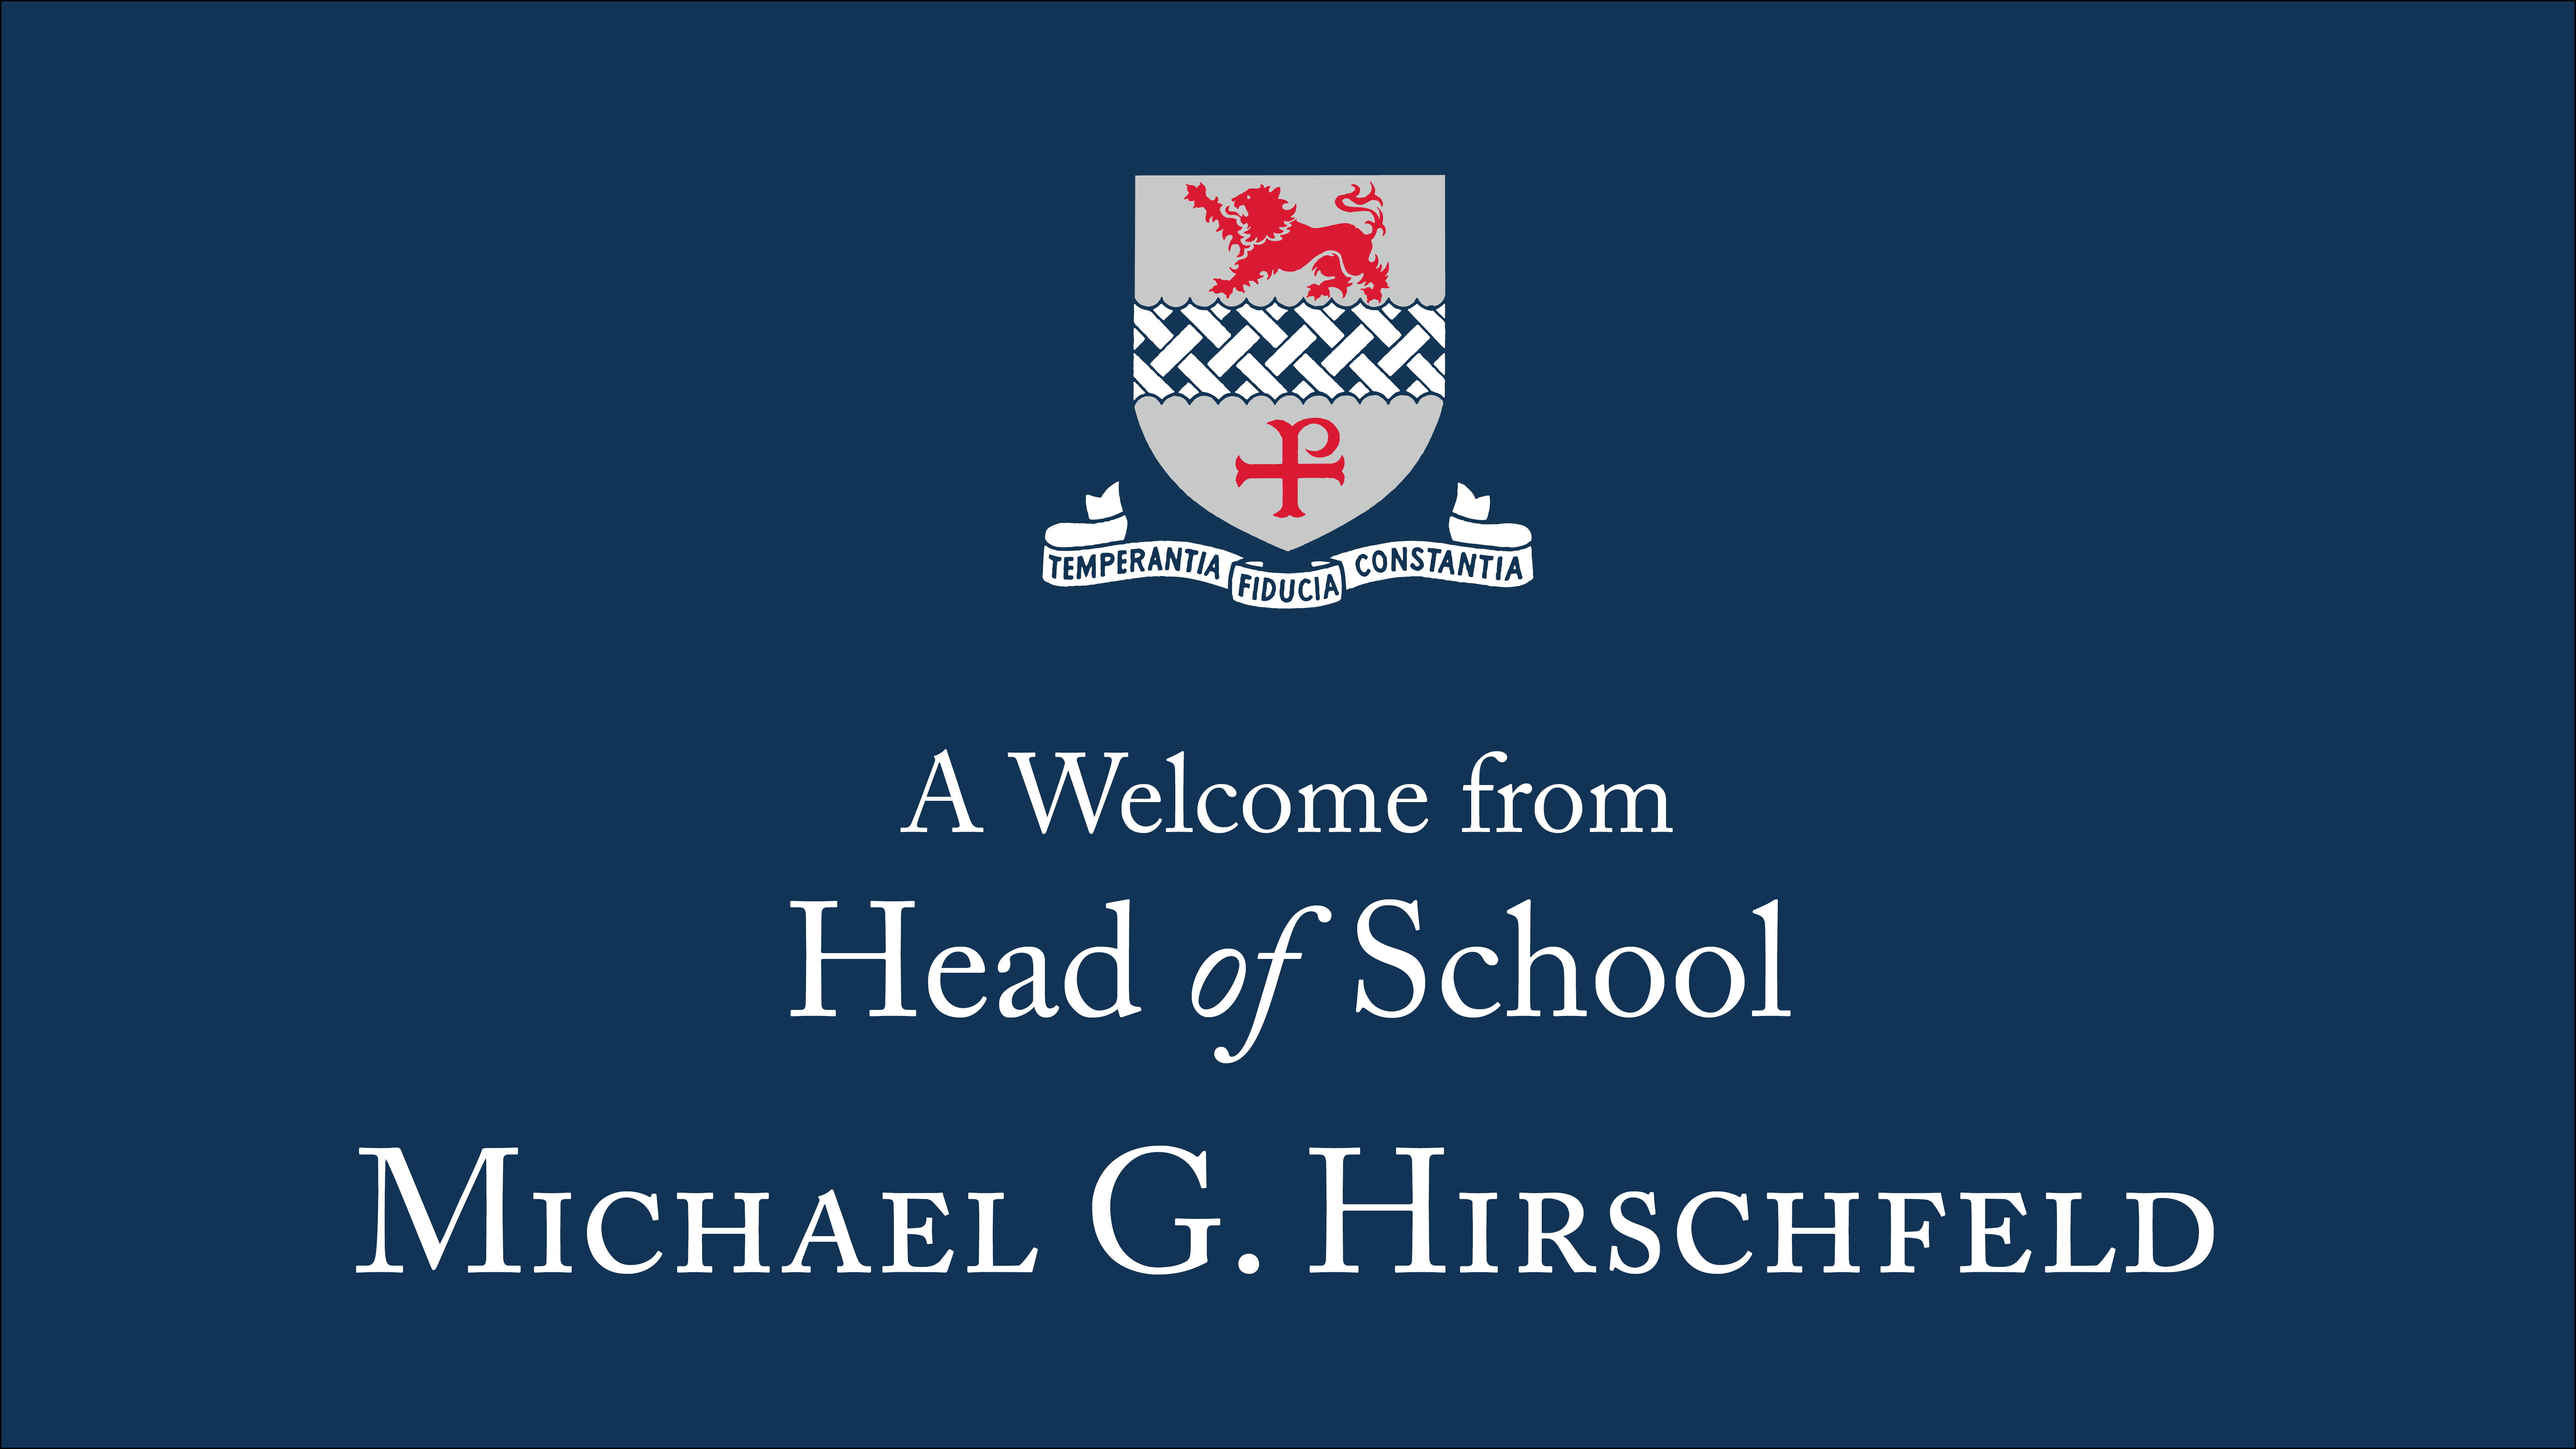 Head of school video